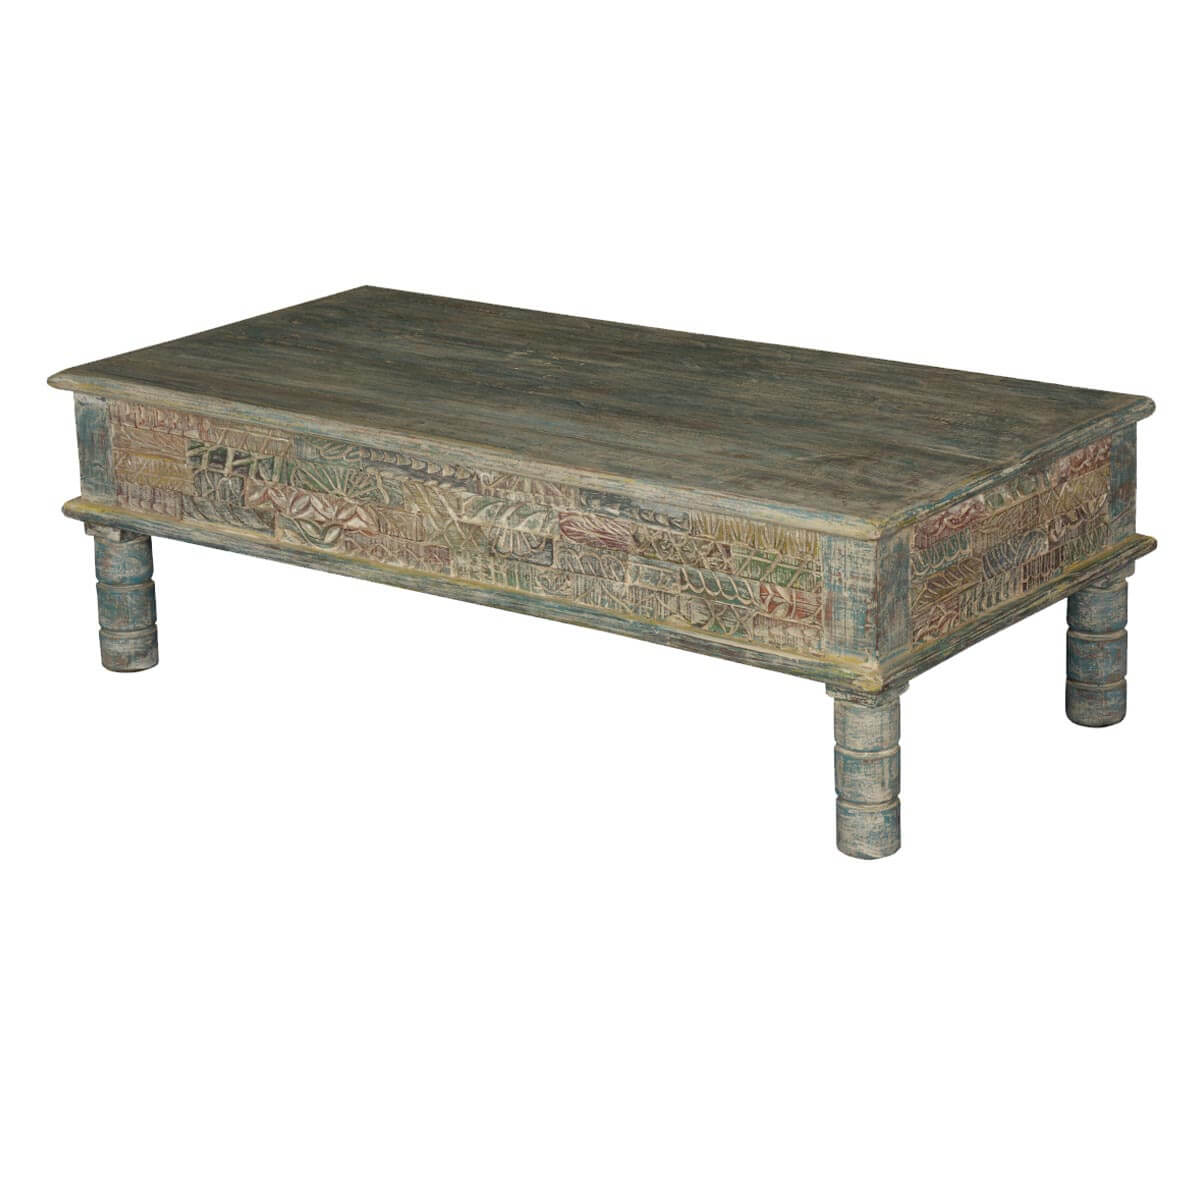 Tapestry Hand Carved Reclaimed Wood Coffee Table